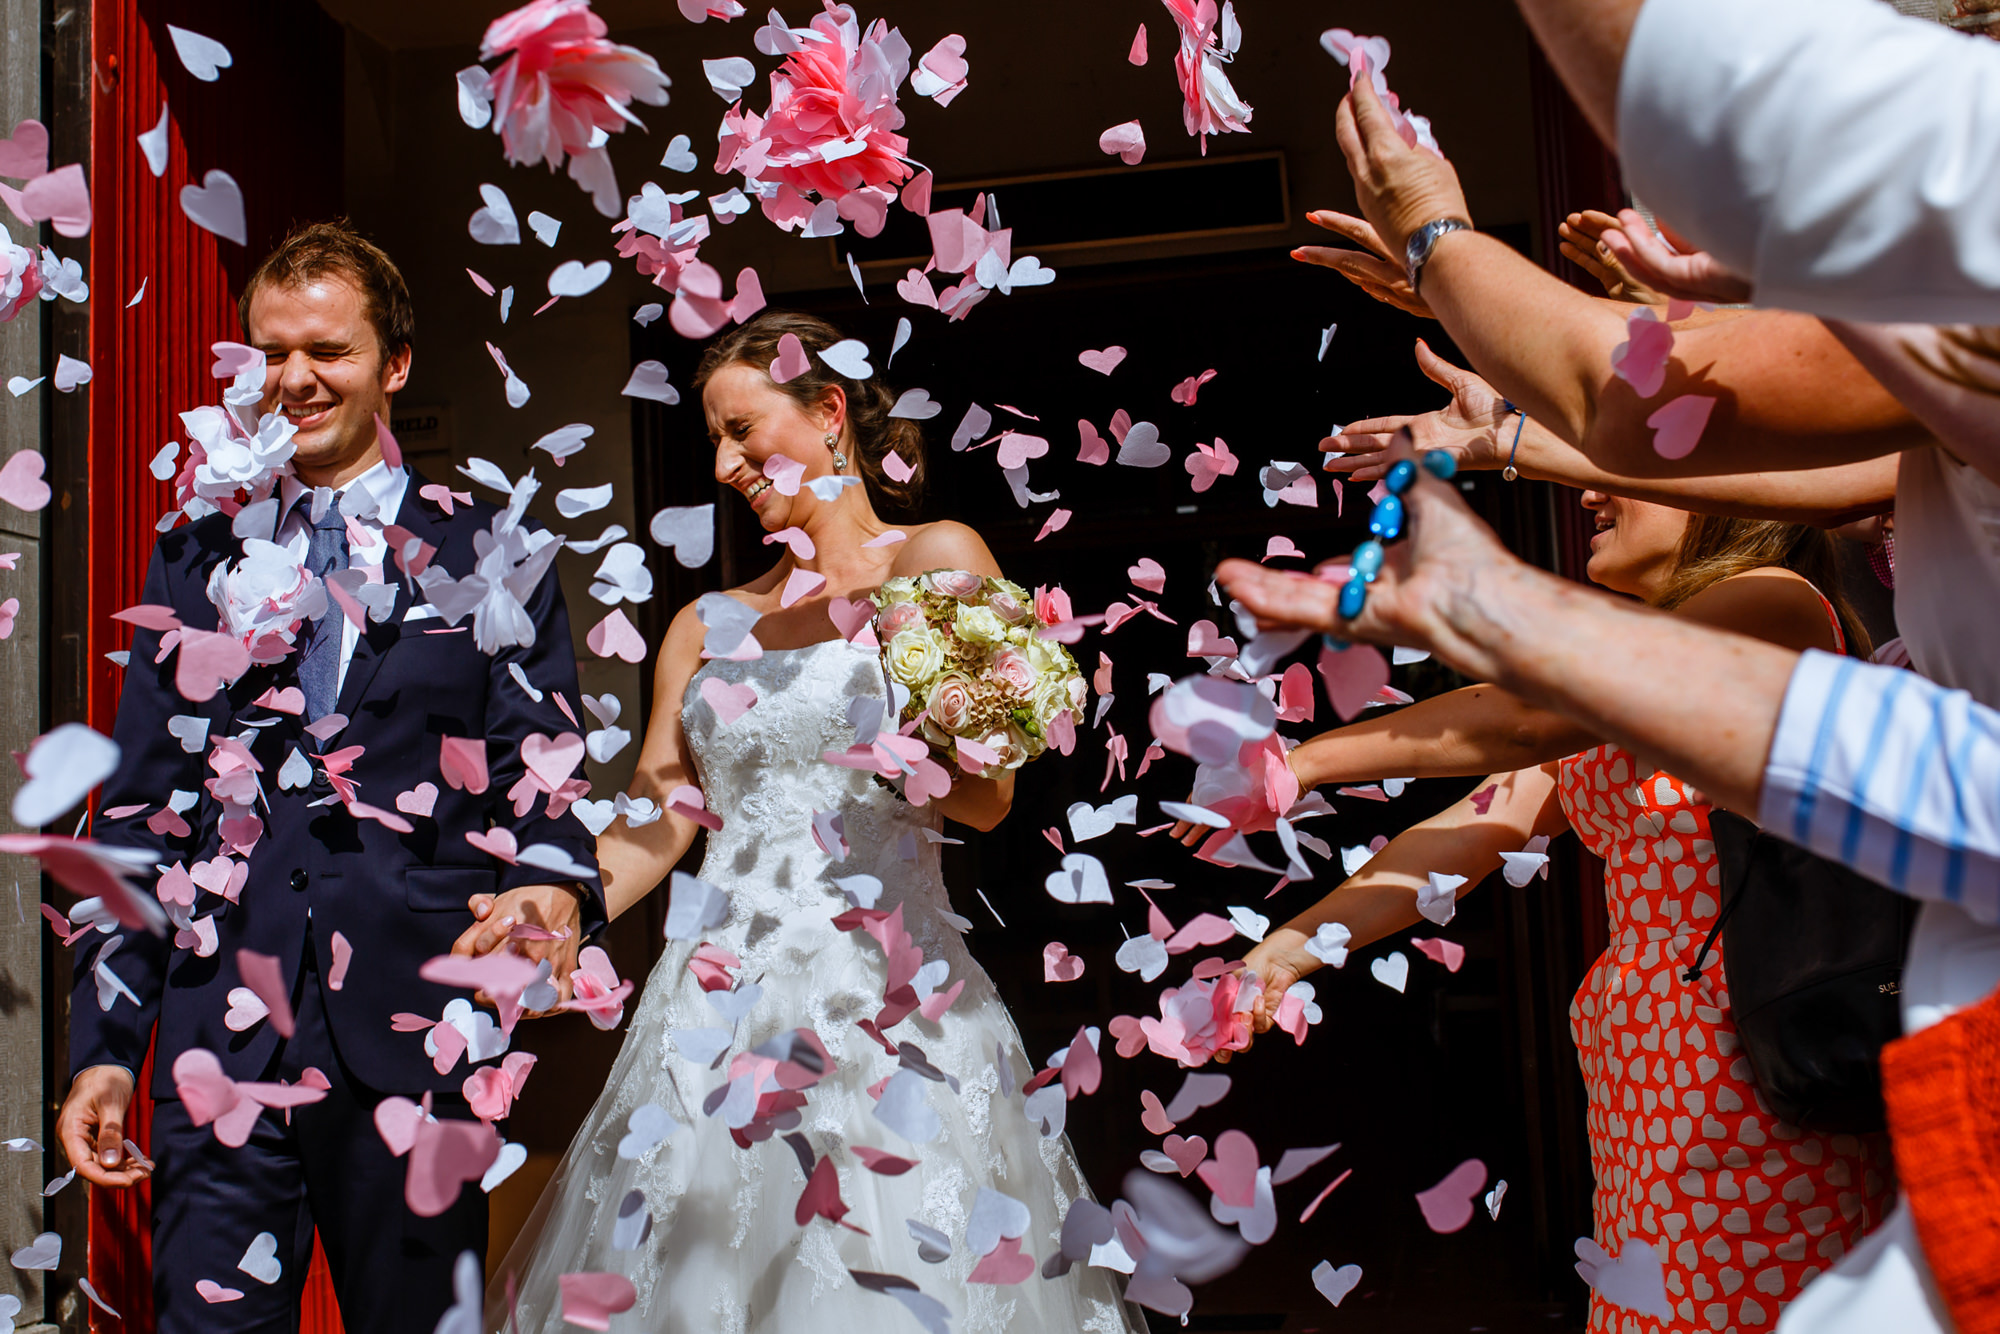 Confetti thrown on bride and groom exiting church - photo by Phillipe Swiggers